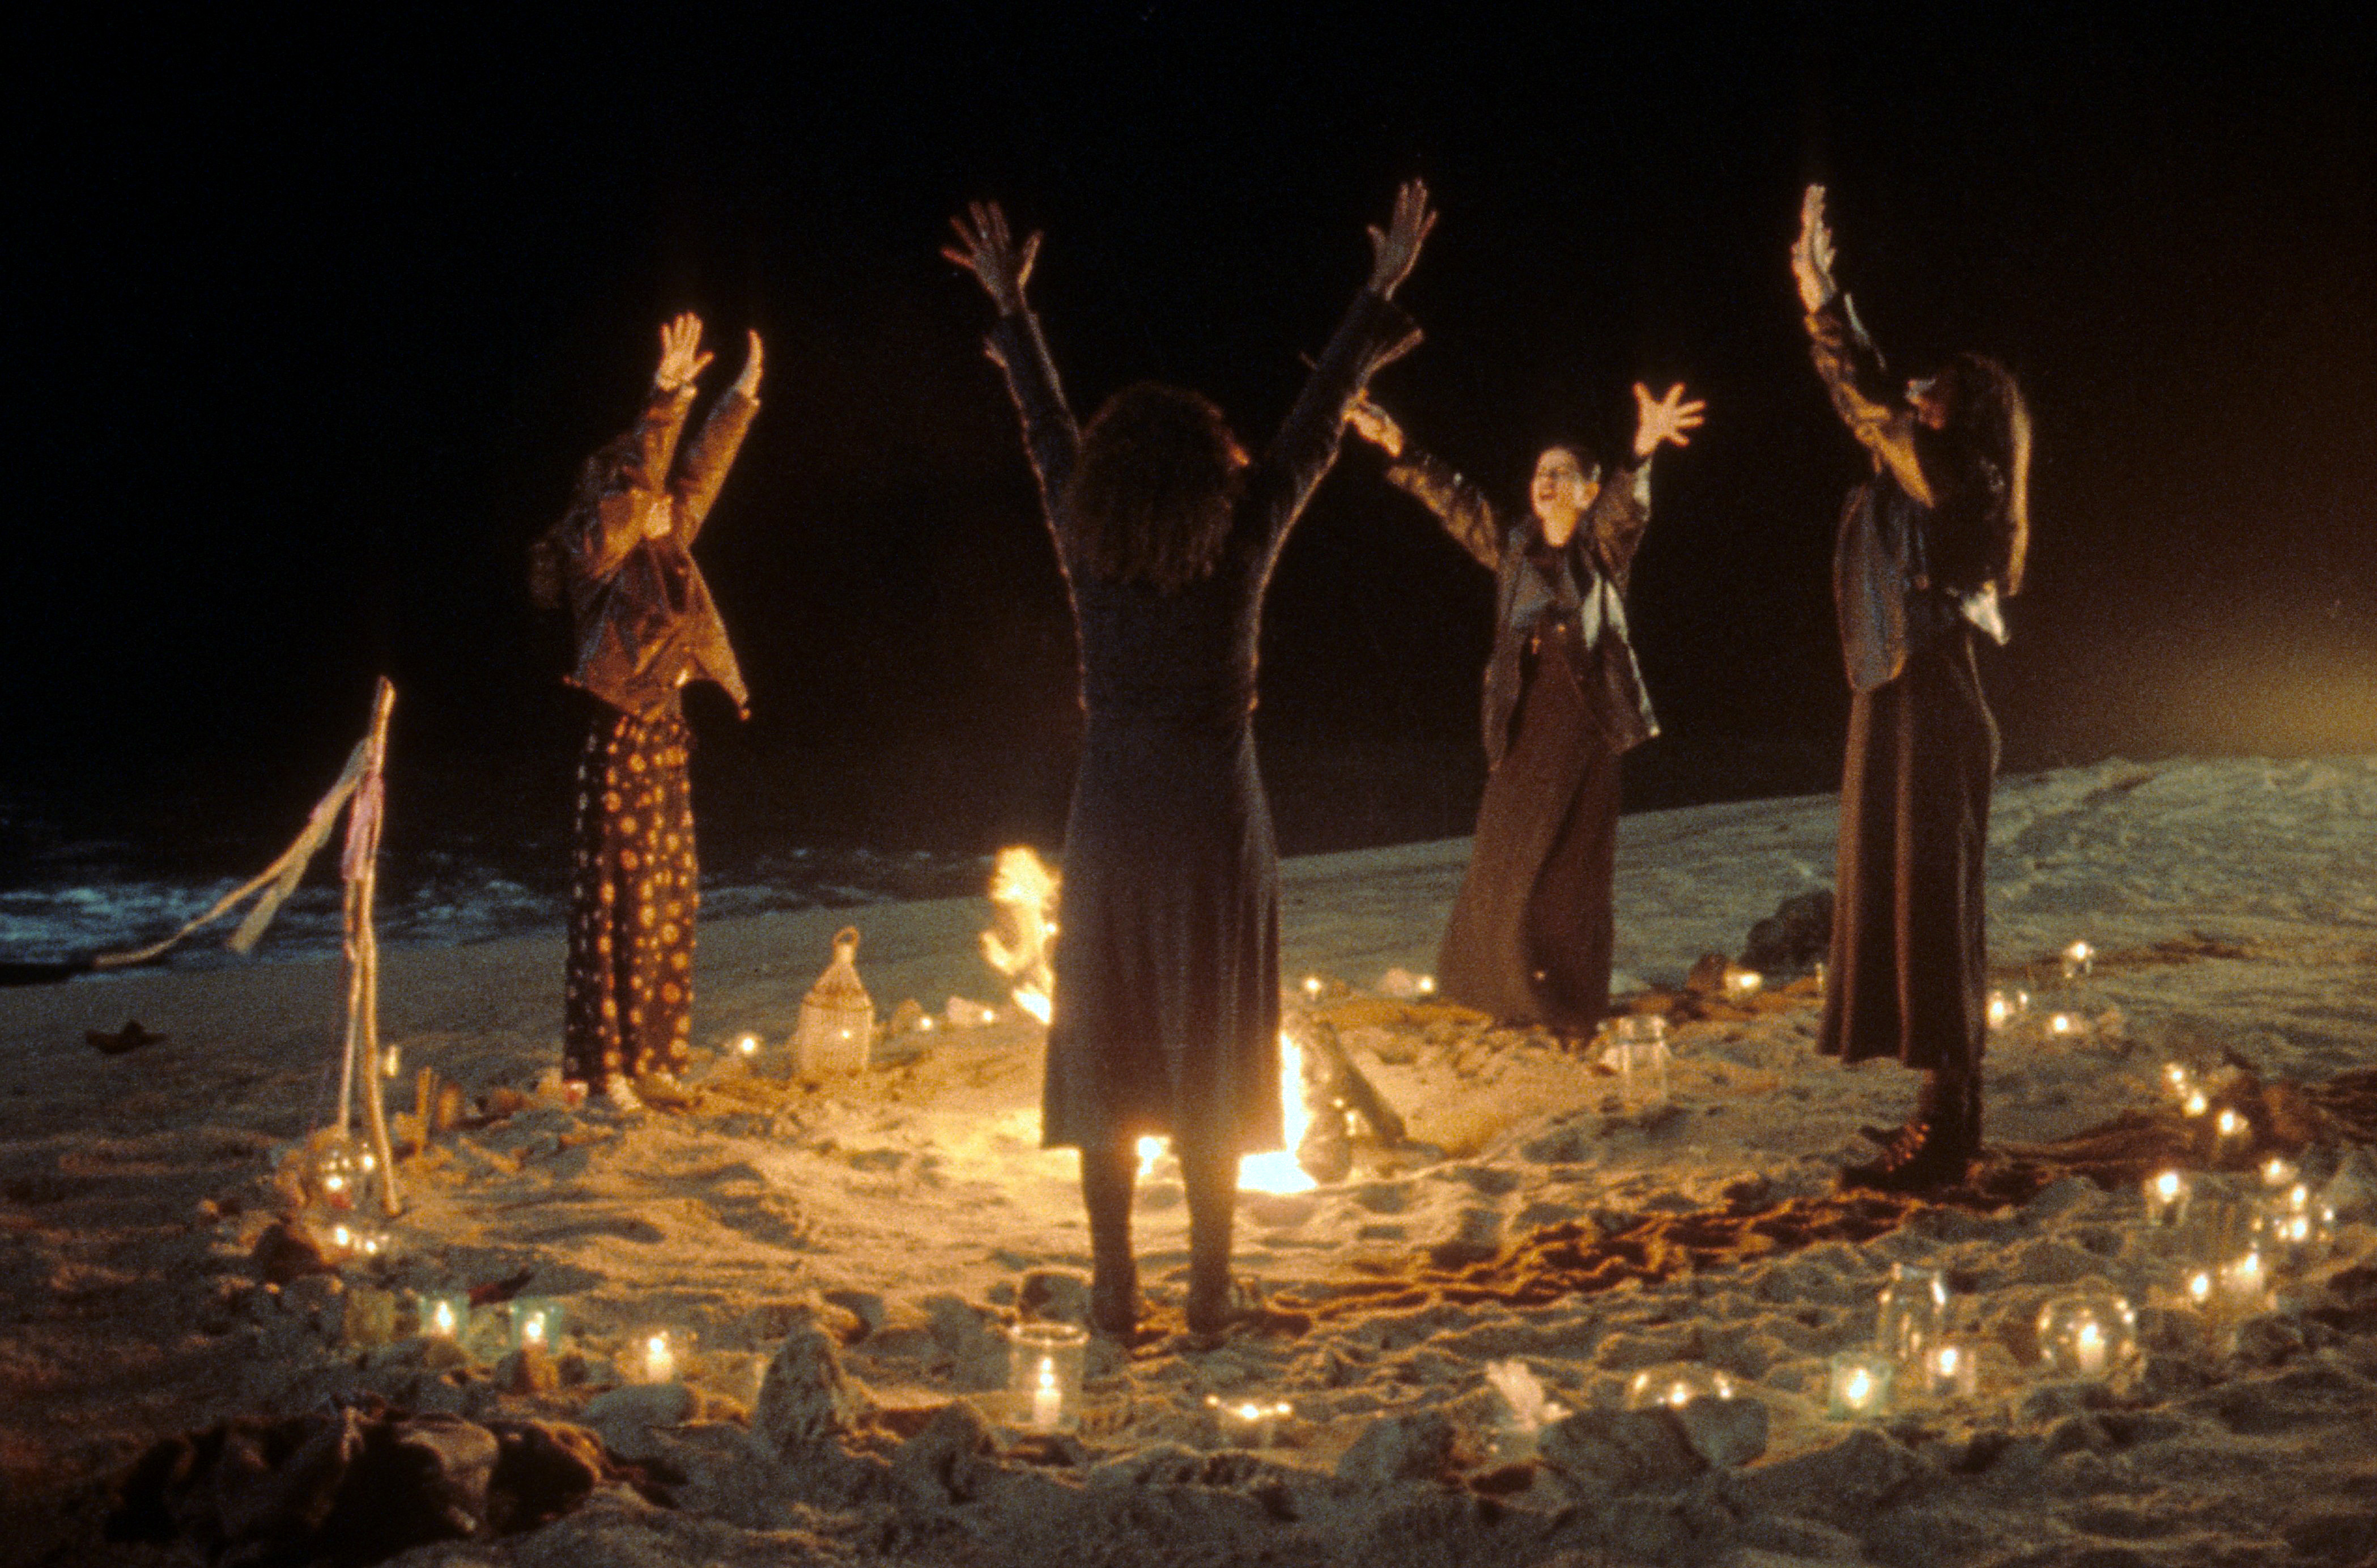 Robin Tunney, Fairuza Balk, Rachel True and Neve Campbell crowded around a fire, performing a ritual in a scene from the film 'The Craft', 1996.